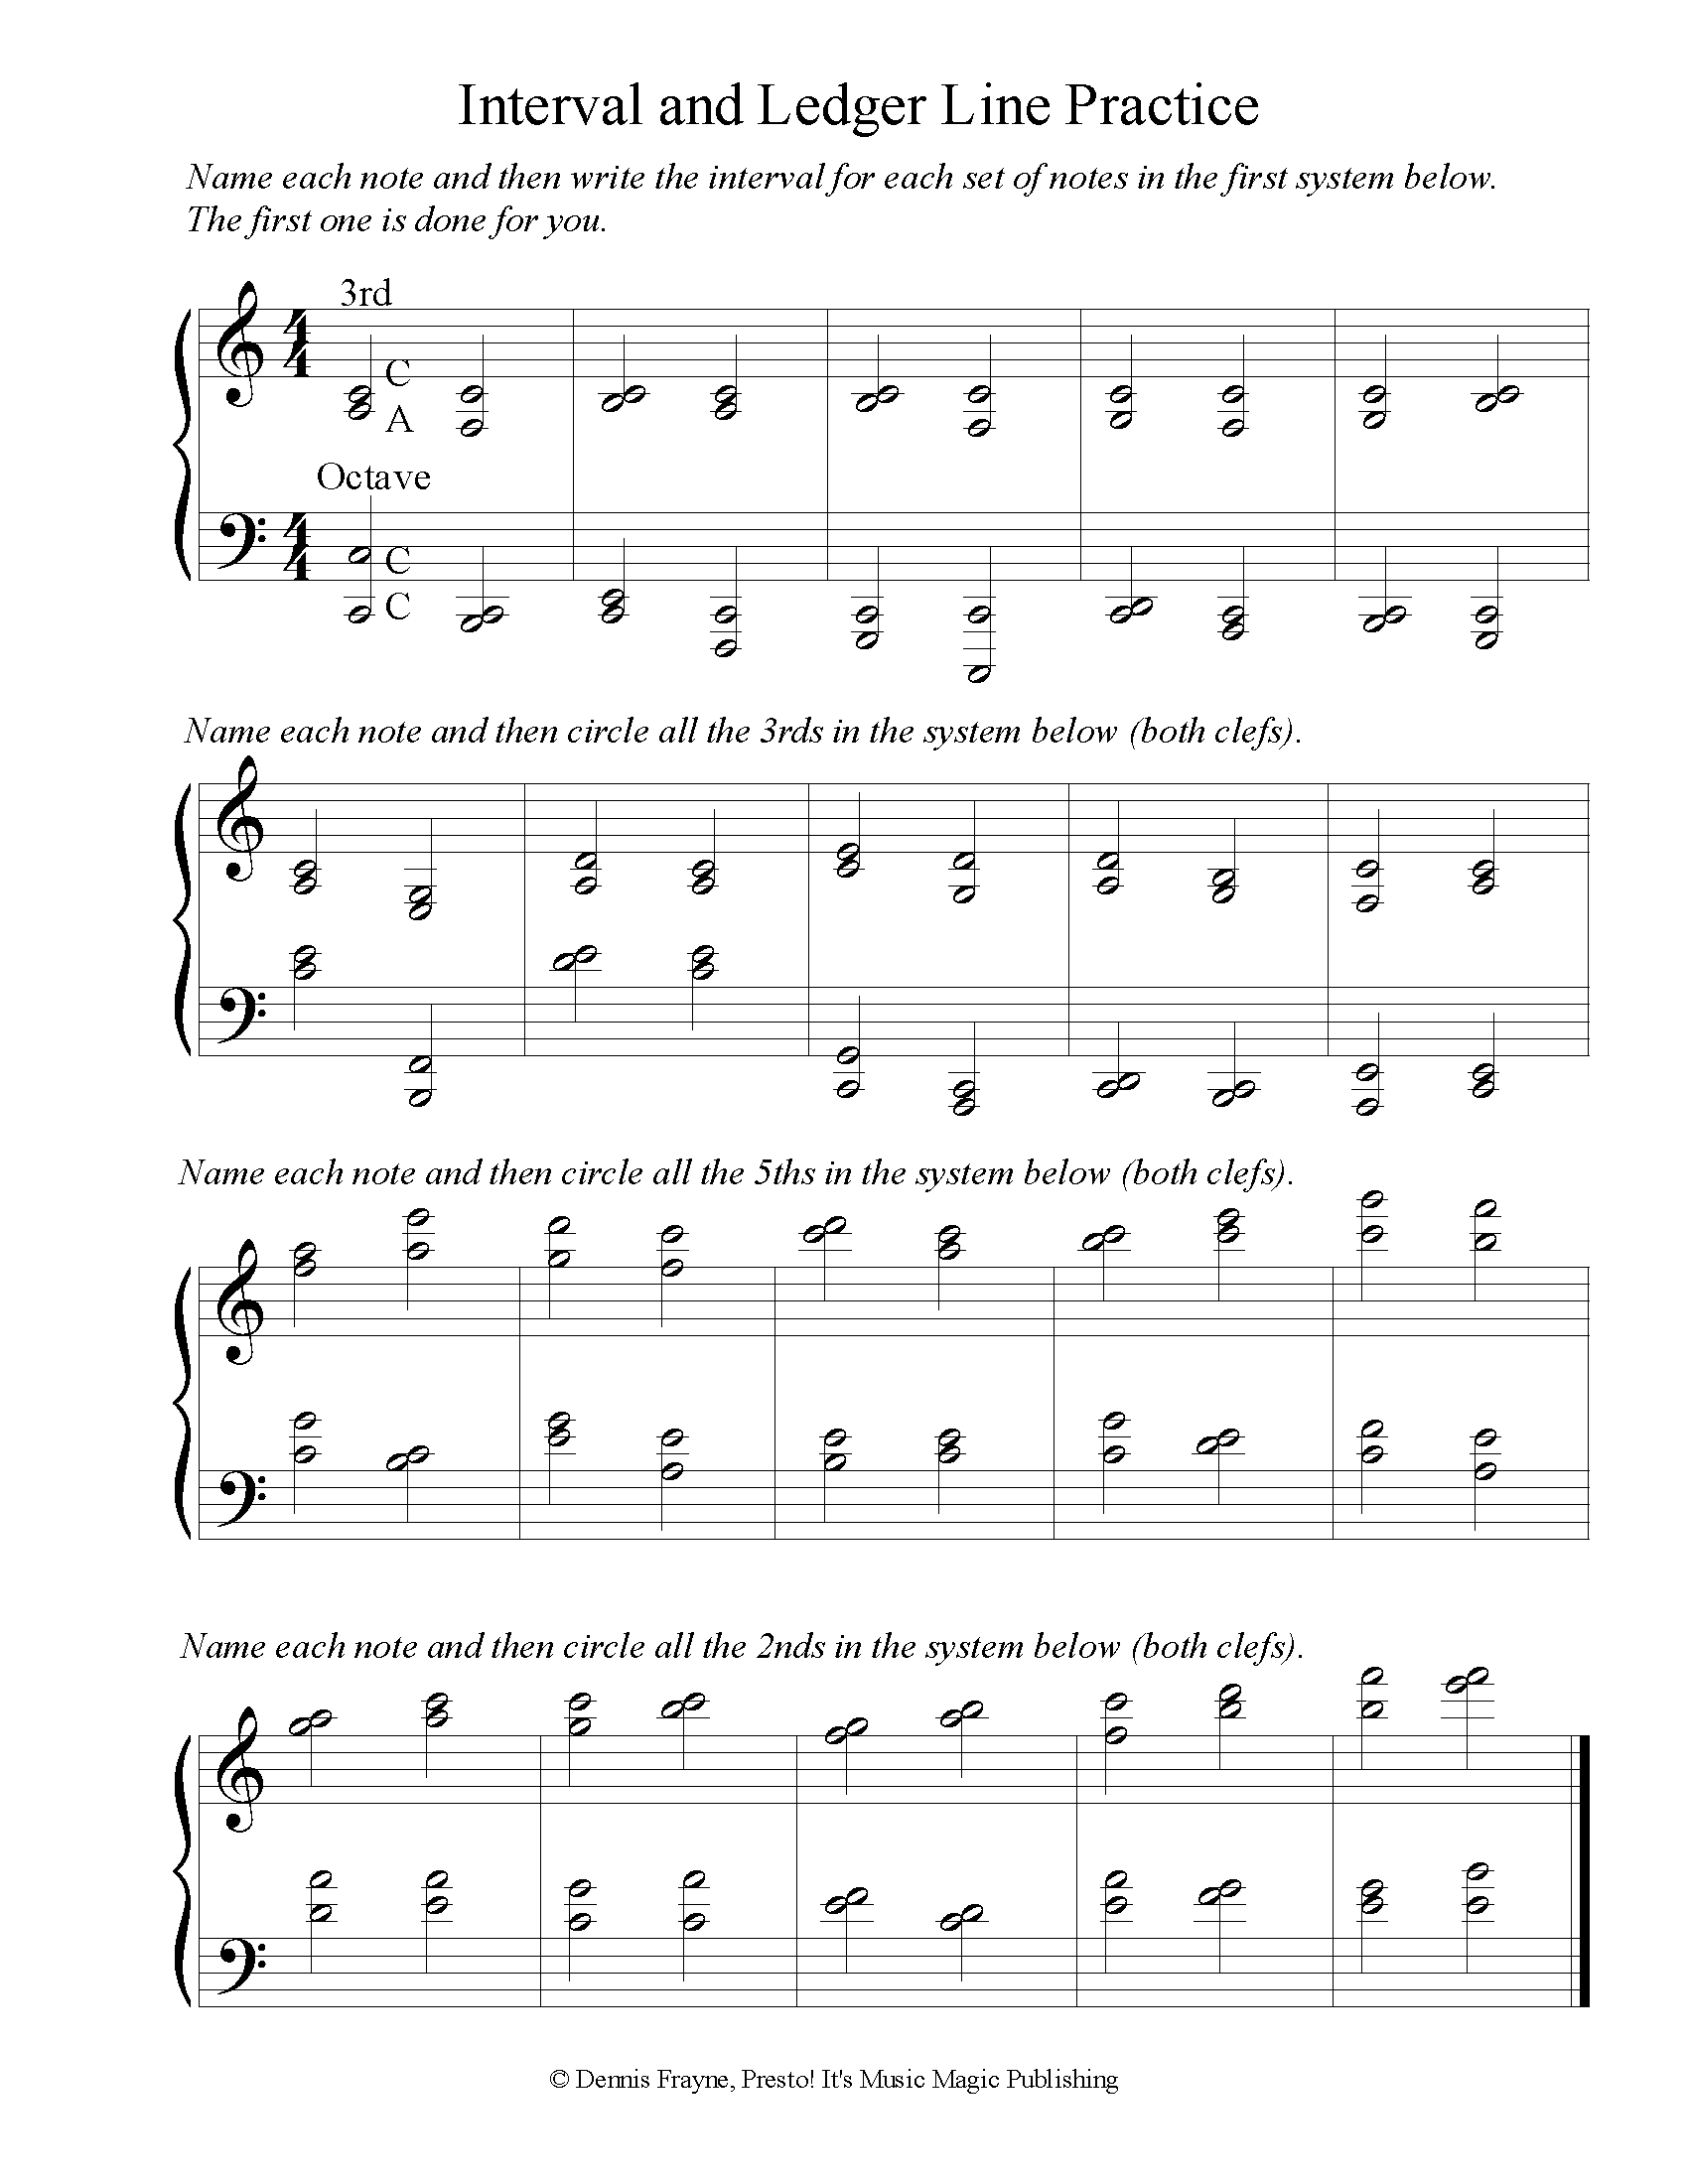 Grand Staff Ledger Line Note Naming and Intervals Practice 1 page